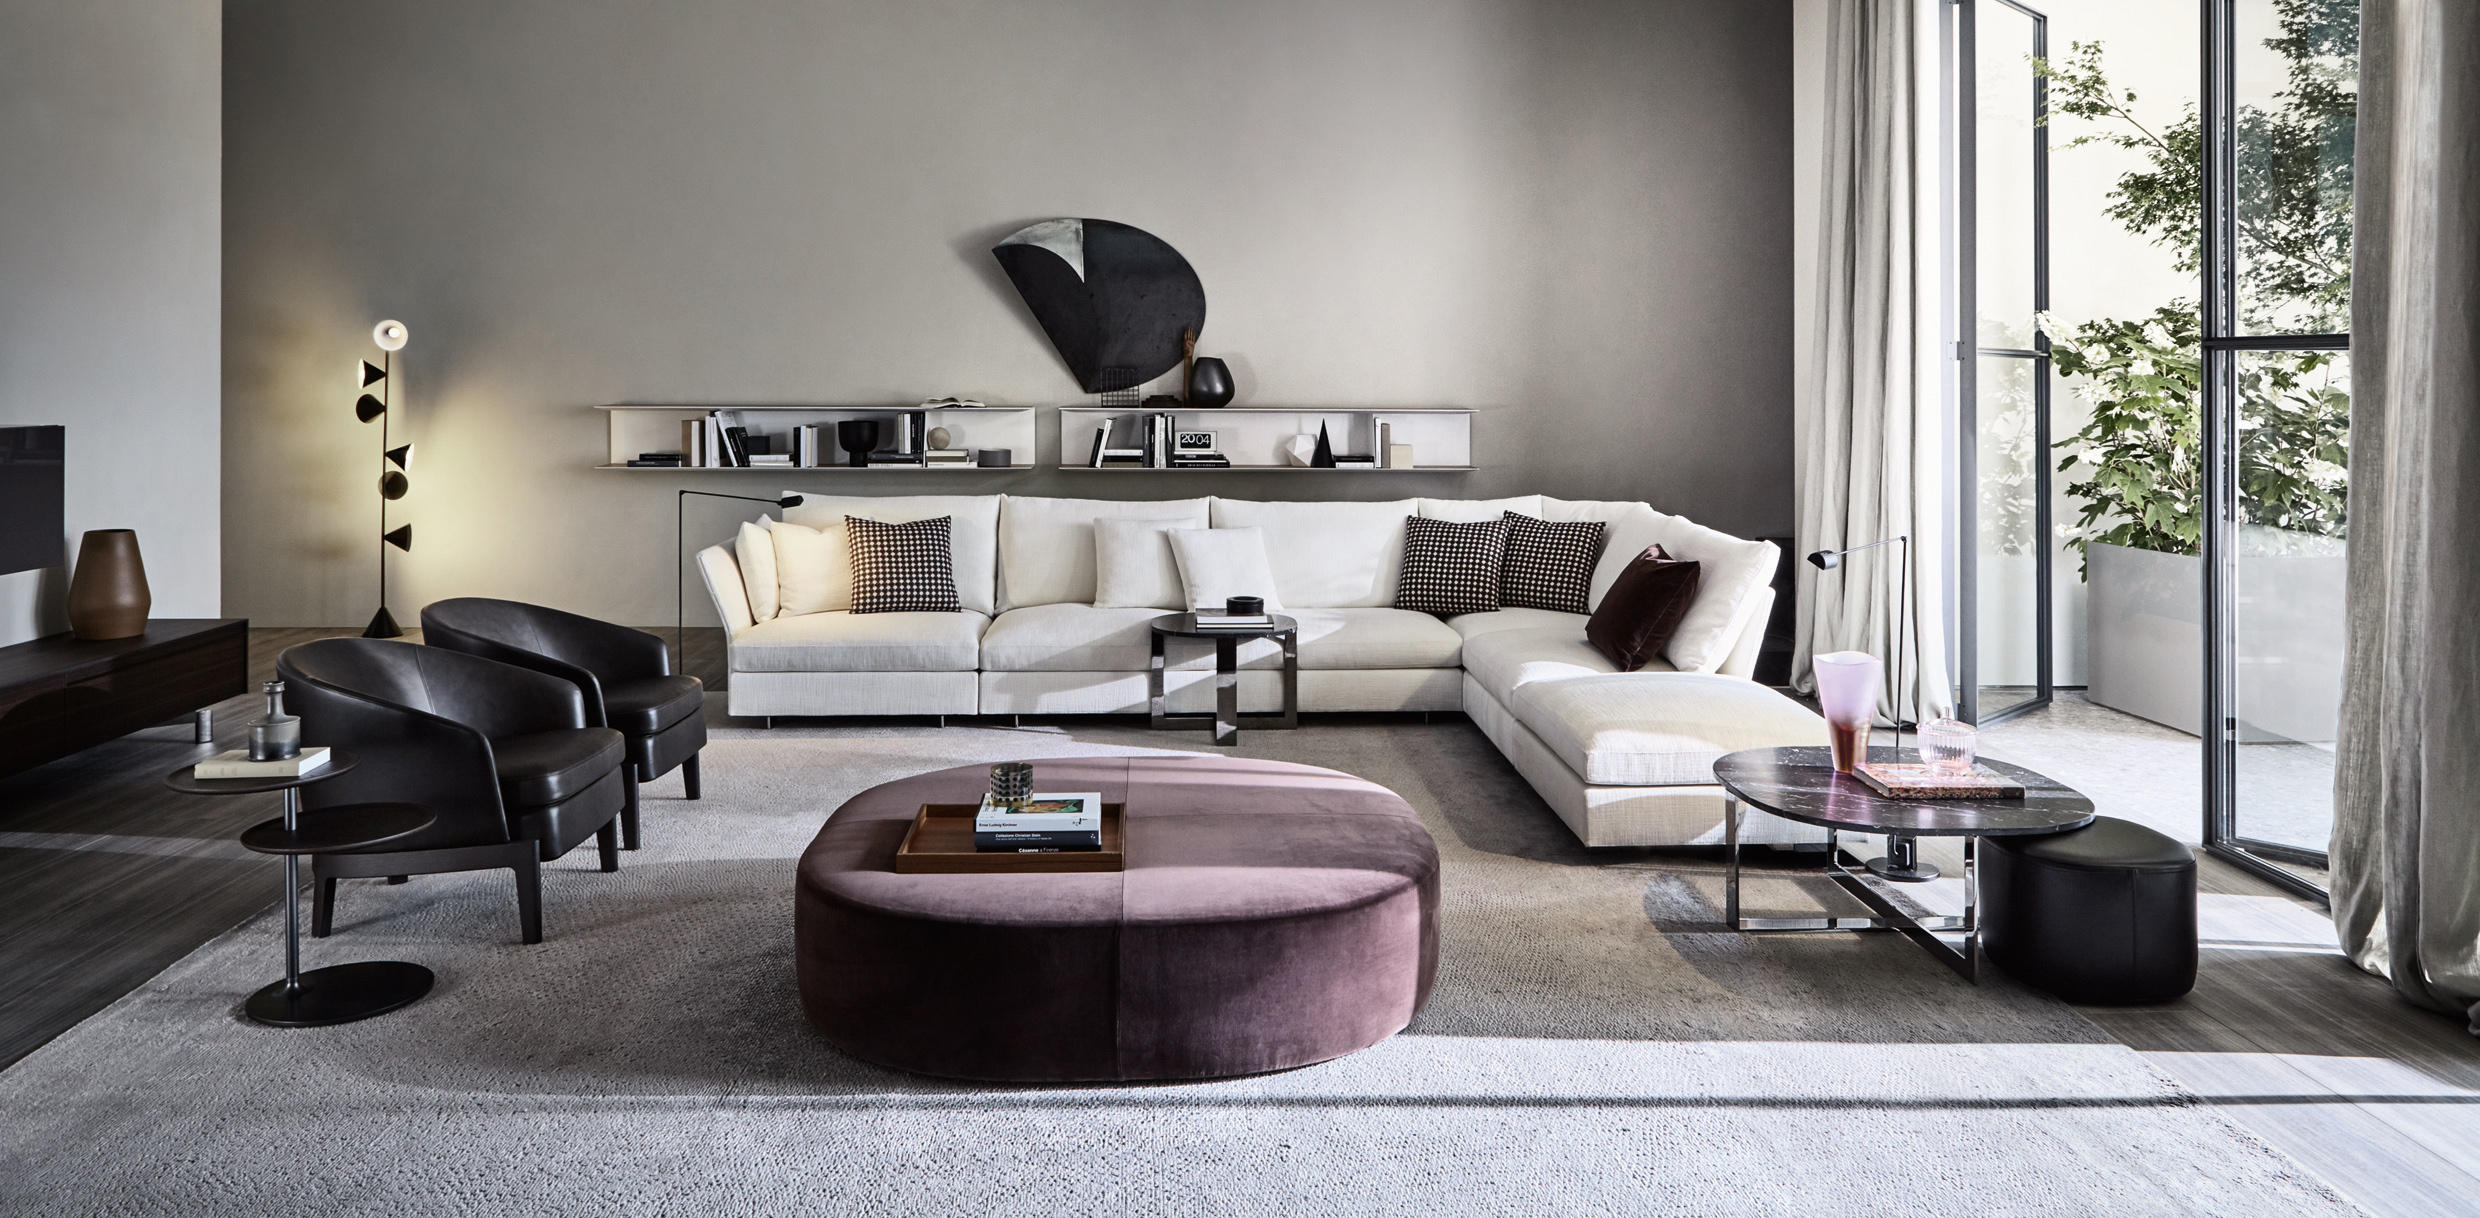 Living Divani Sofa Price Living Divani Price List